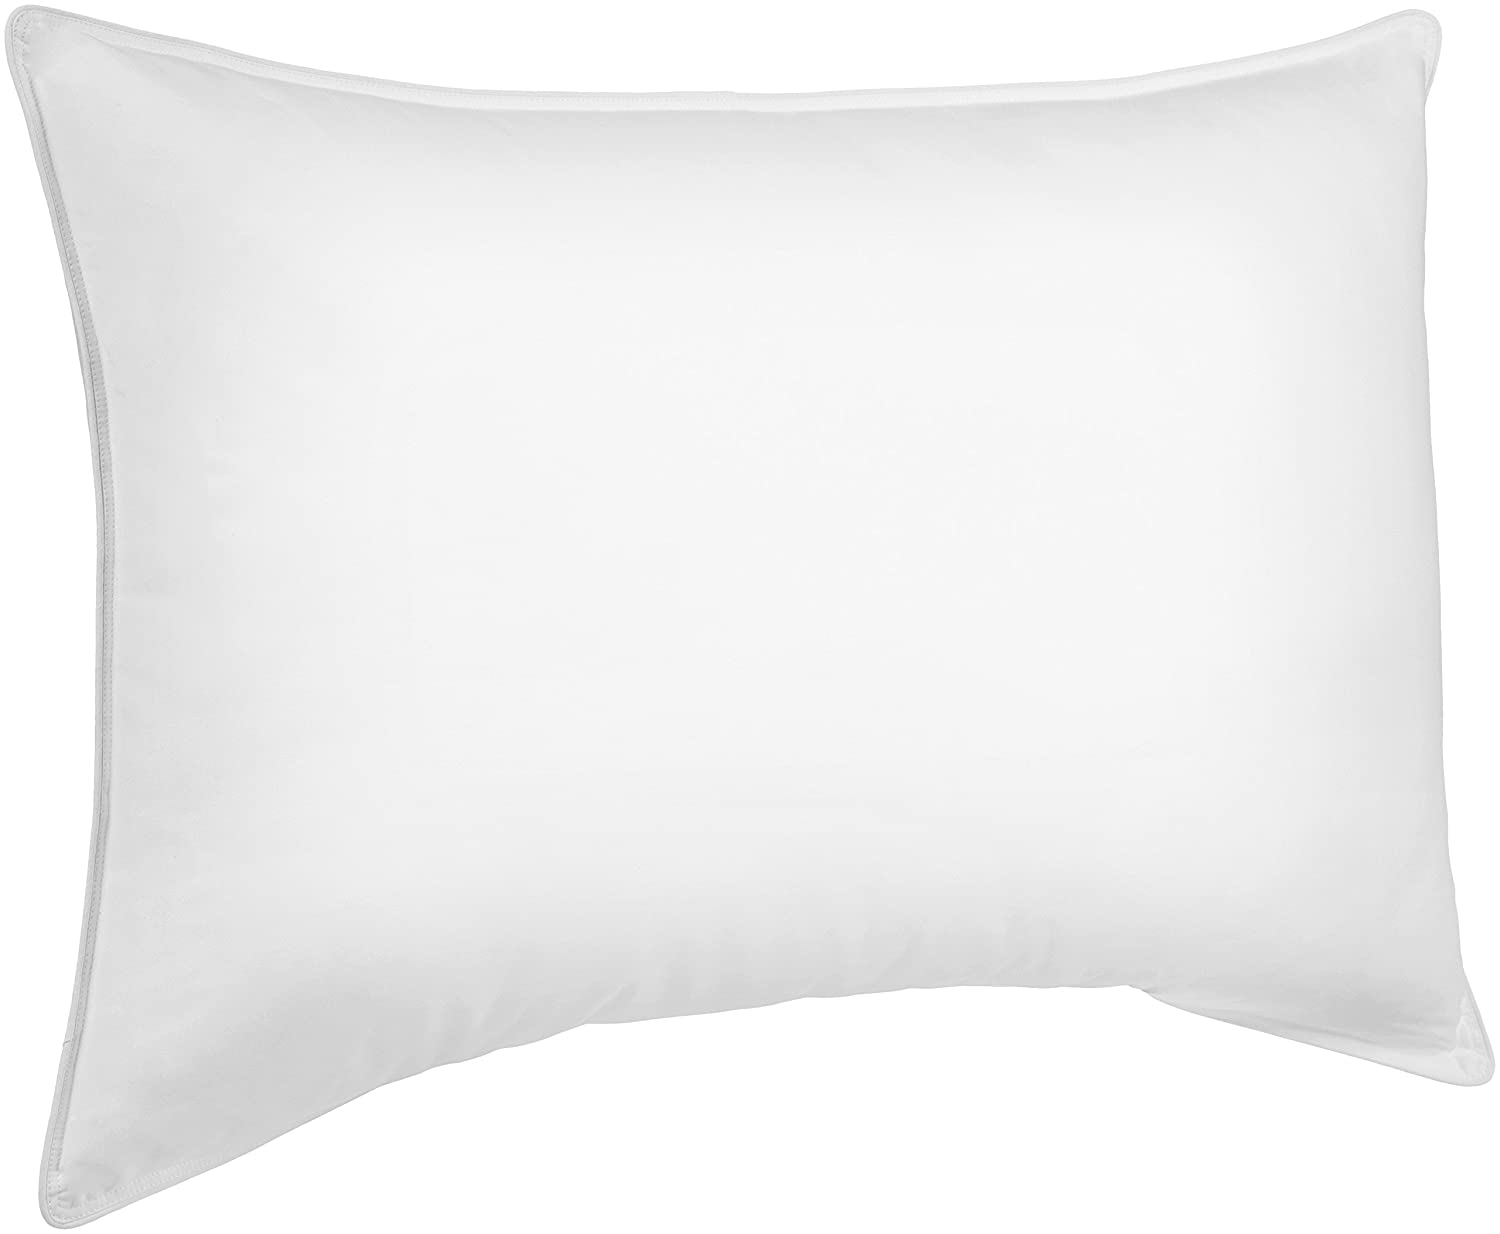 Pinzon Down Alternative Pillow - Medium Density for Back Sleepers, Standard